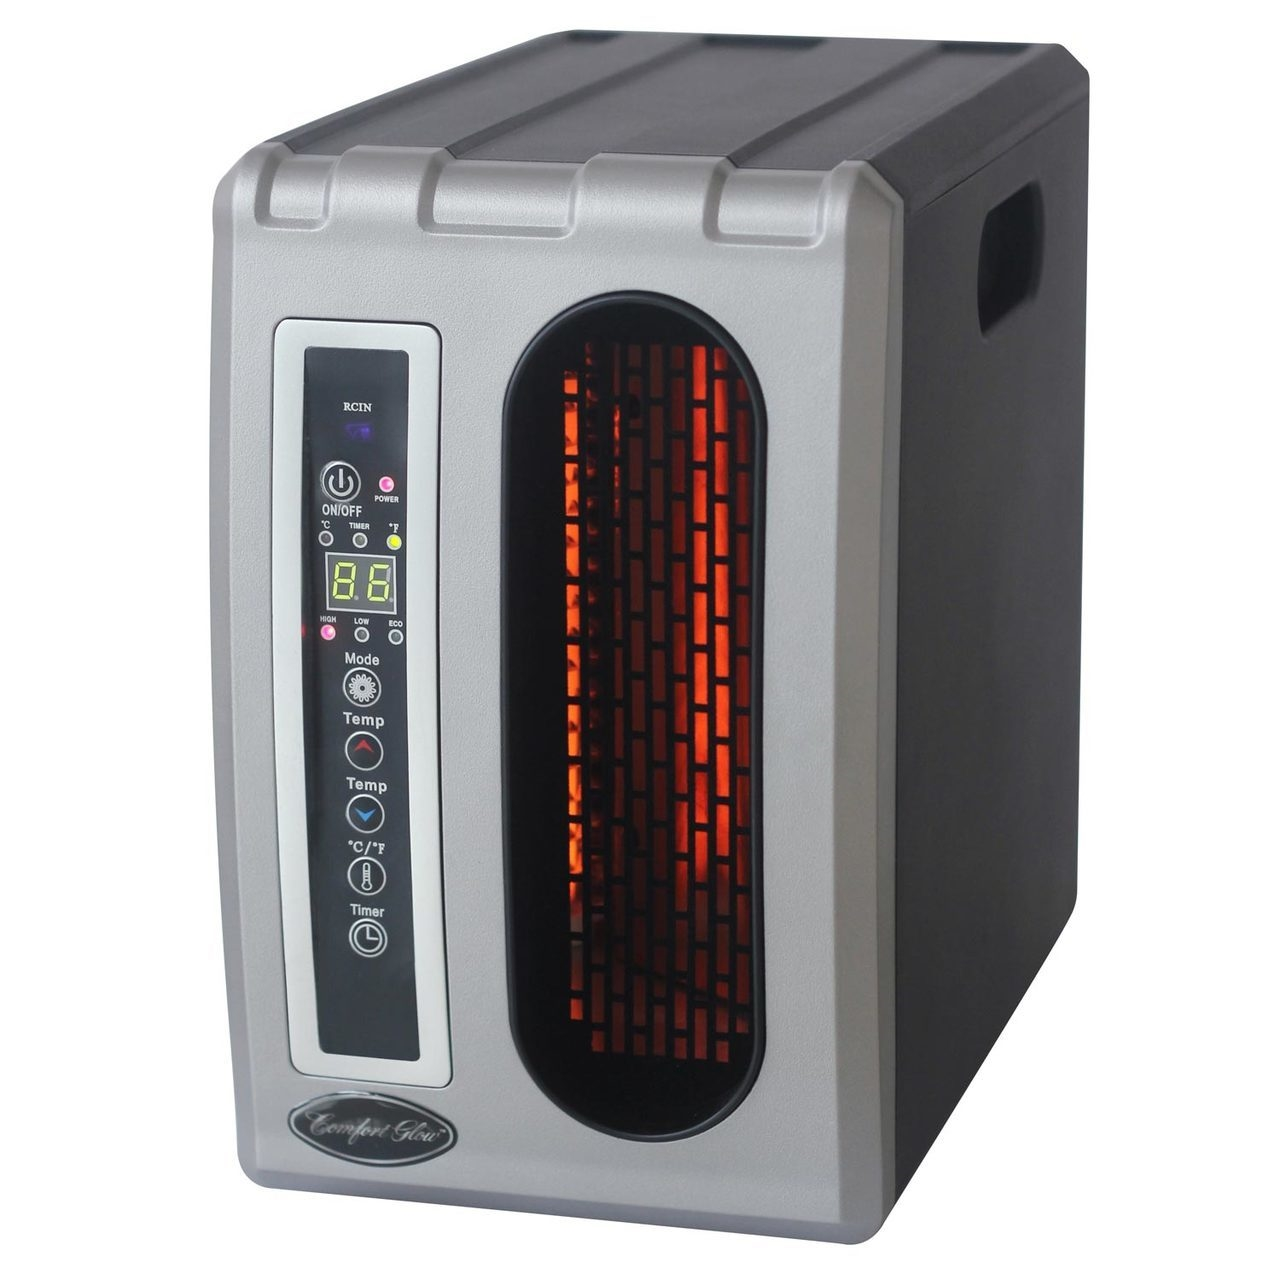 Picture of Comfort Glow QDE1320 Furnace Electric Heater, 15 A, 120 V, 1500 W, 5120 Btu, 1000 sq-ft Heating Area, Silver